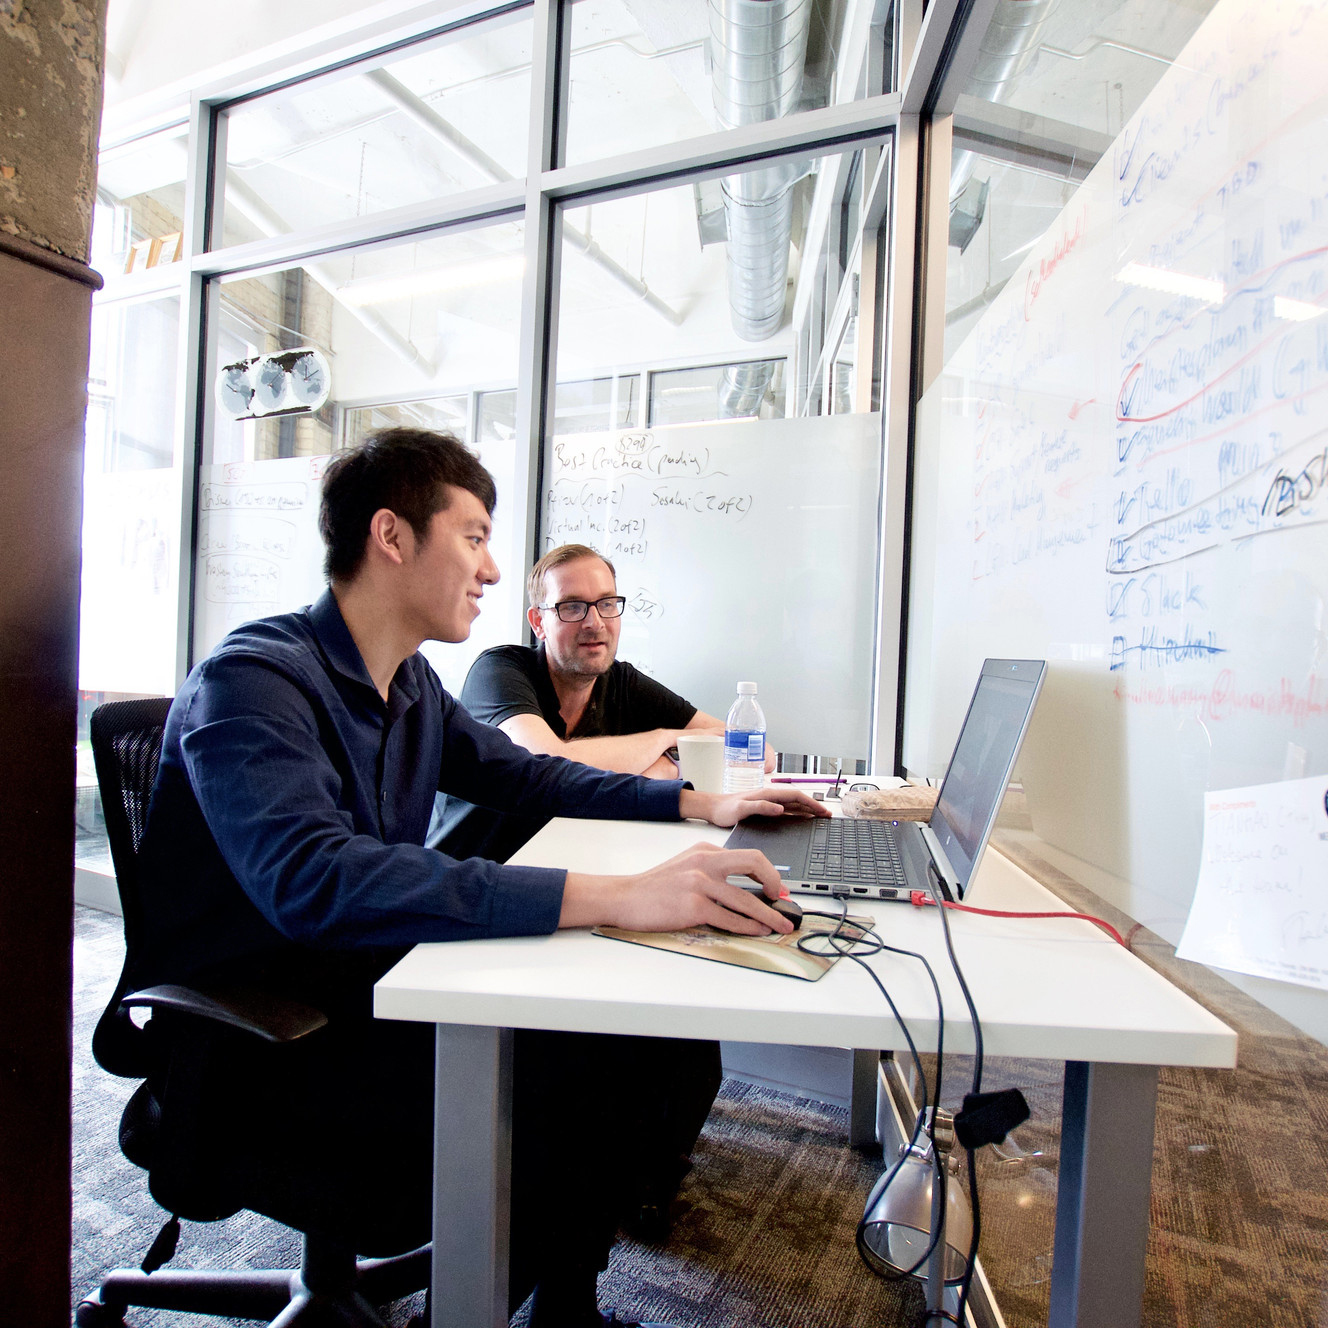 Student and advisor sitting at a desk in front of an open laptop